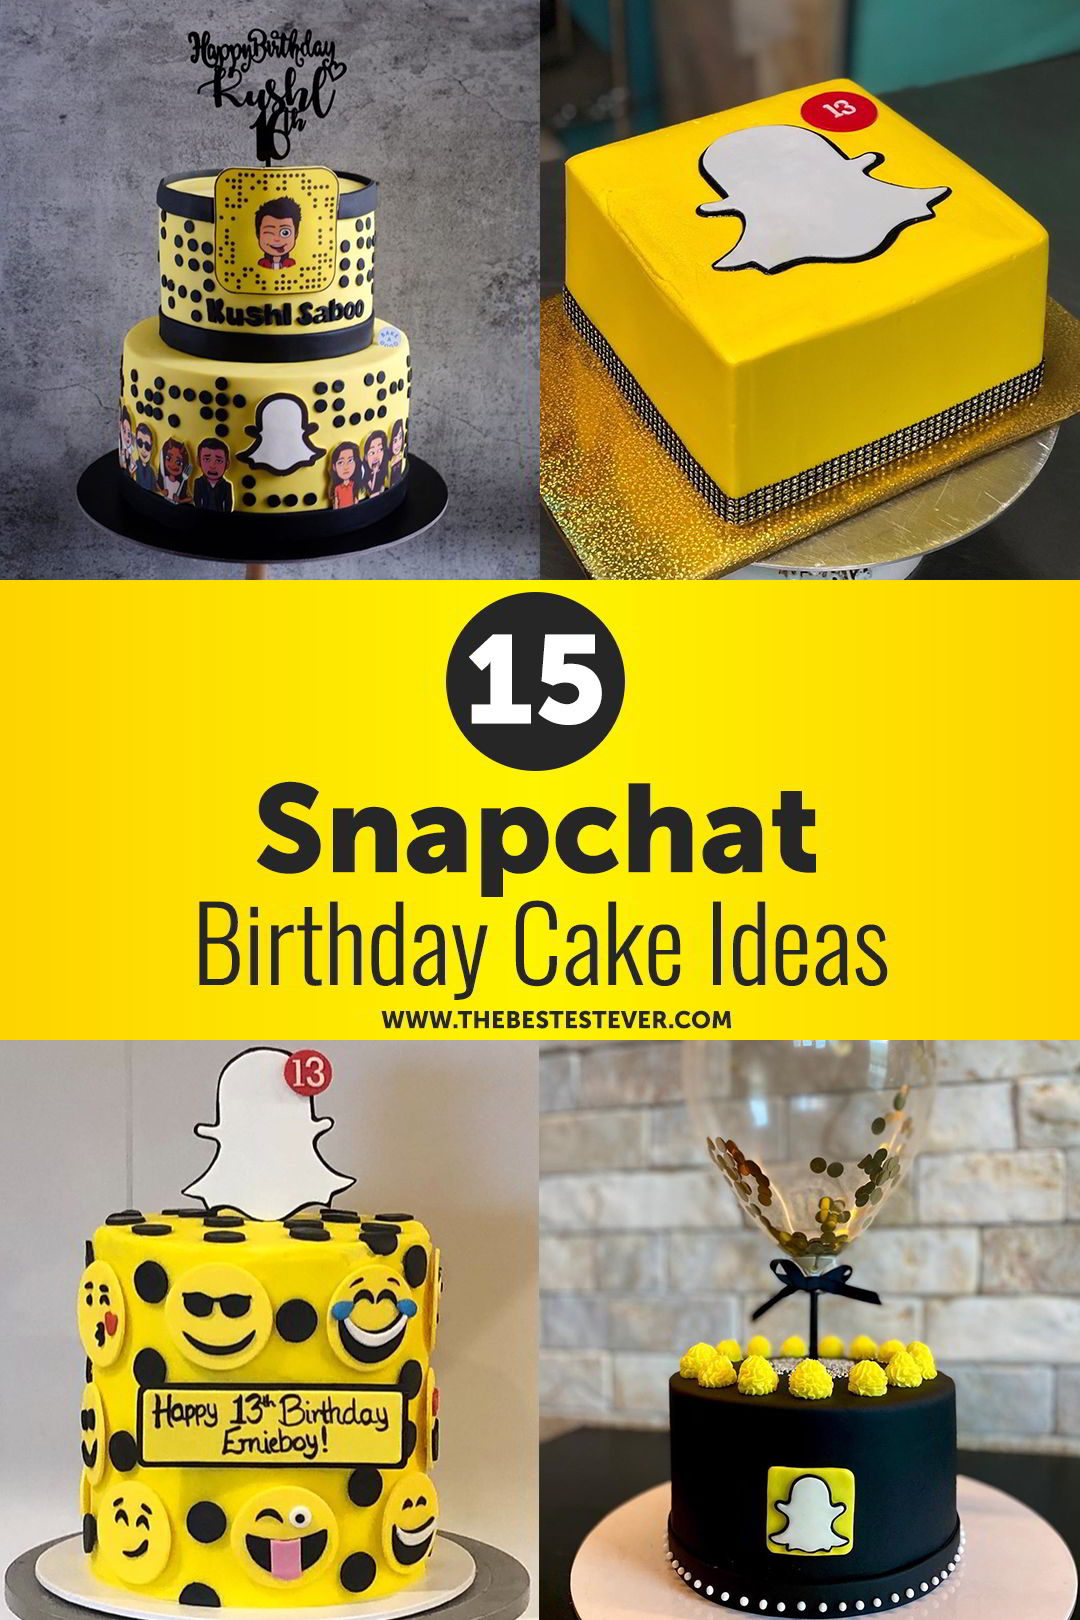 15 Snapchat Cake Ideas & Designs That Will Blow Your Mind